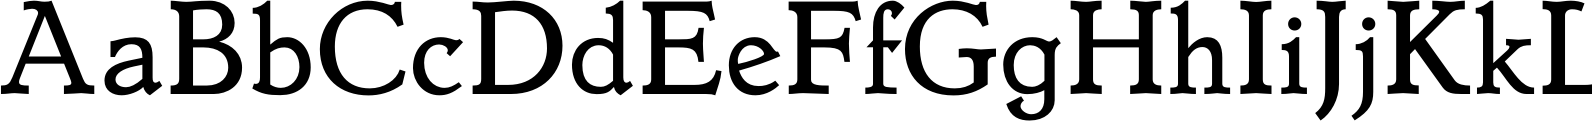 Dutch Mediaeval Book Font